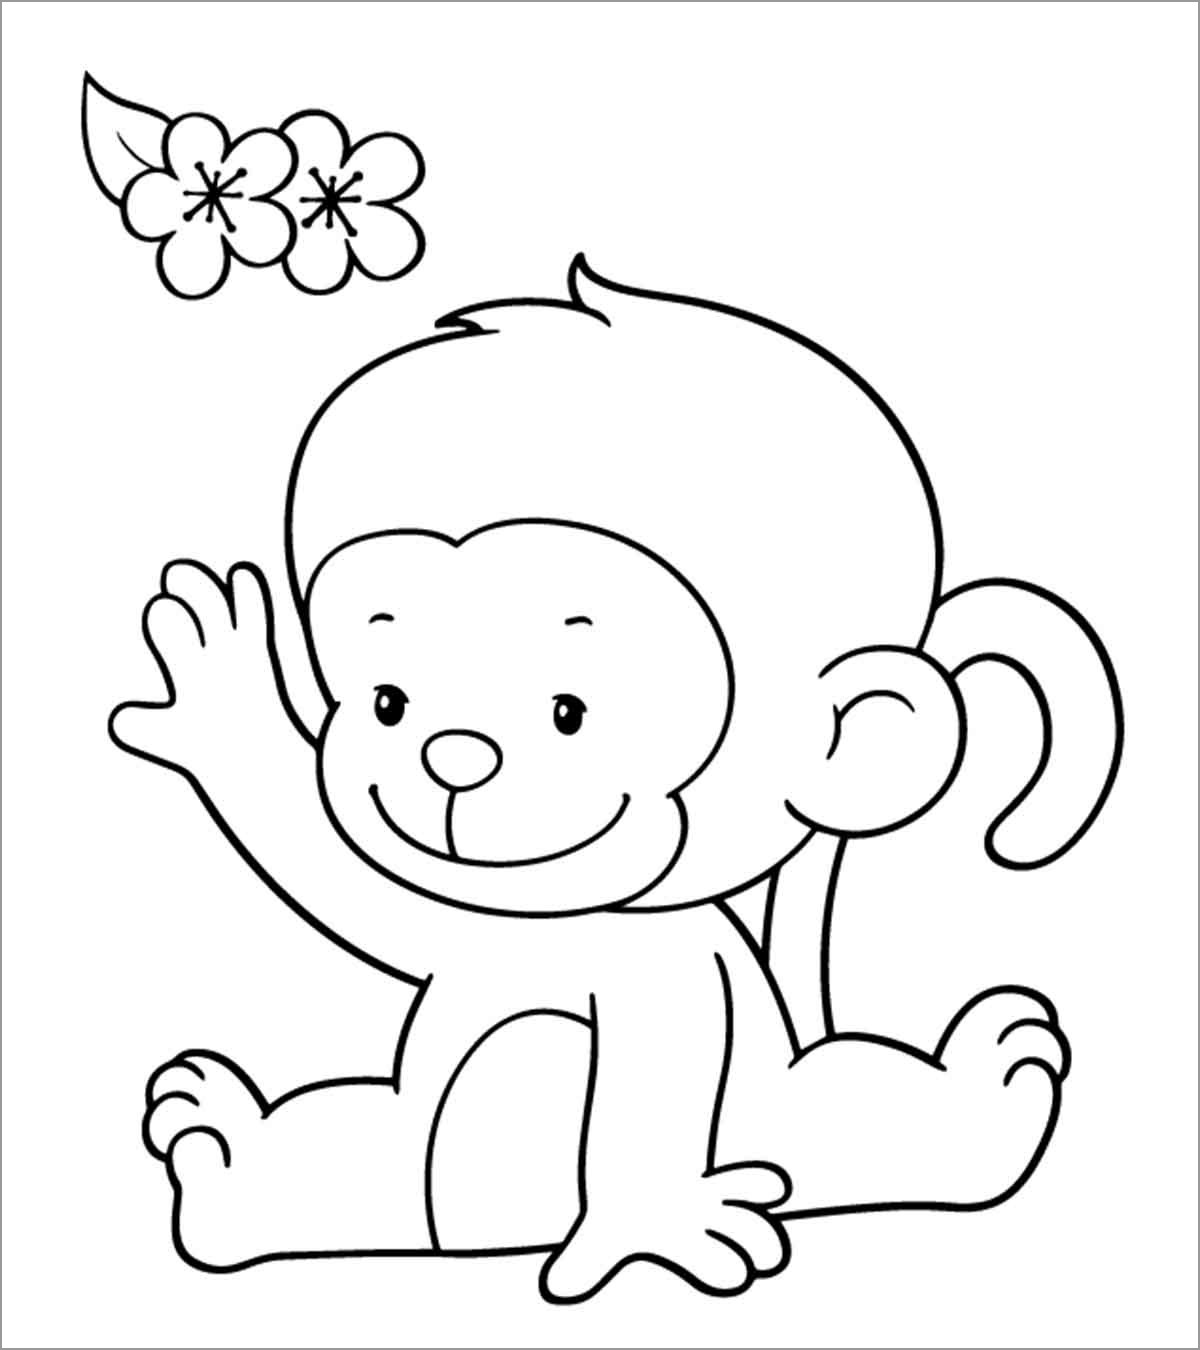 Monkey Coloring Pages - ColoringBay